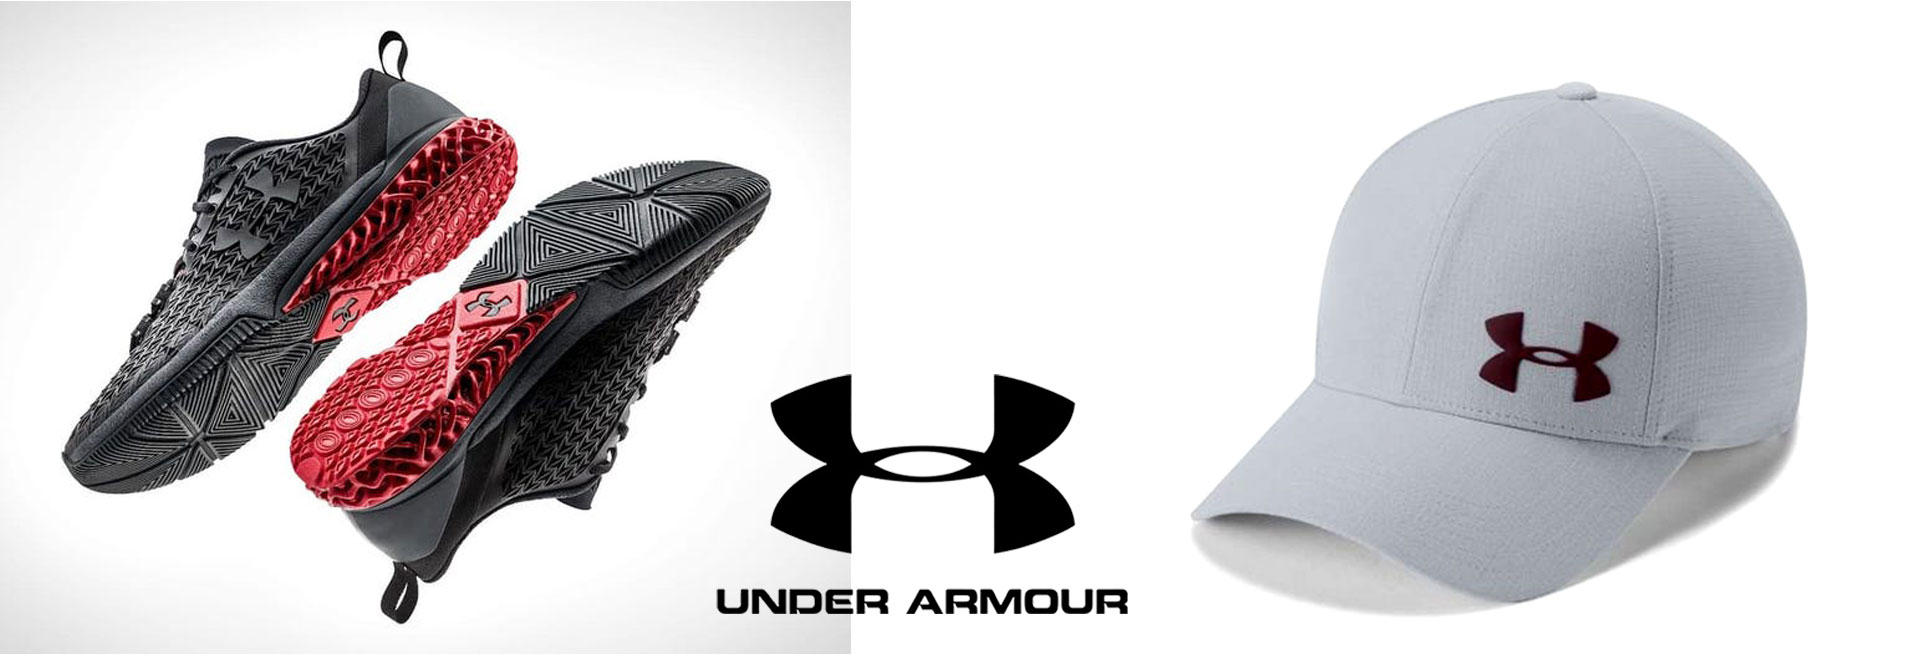 under armour t8 - آندر آرمور Under Armor